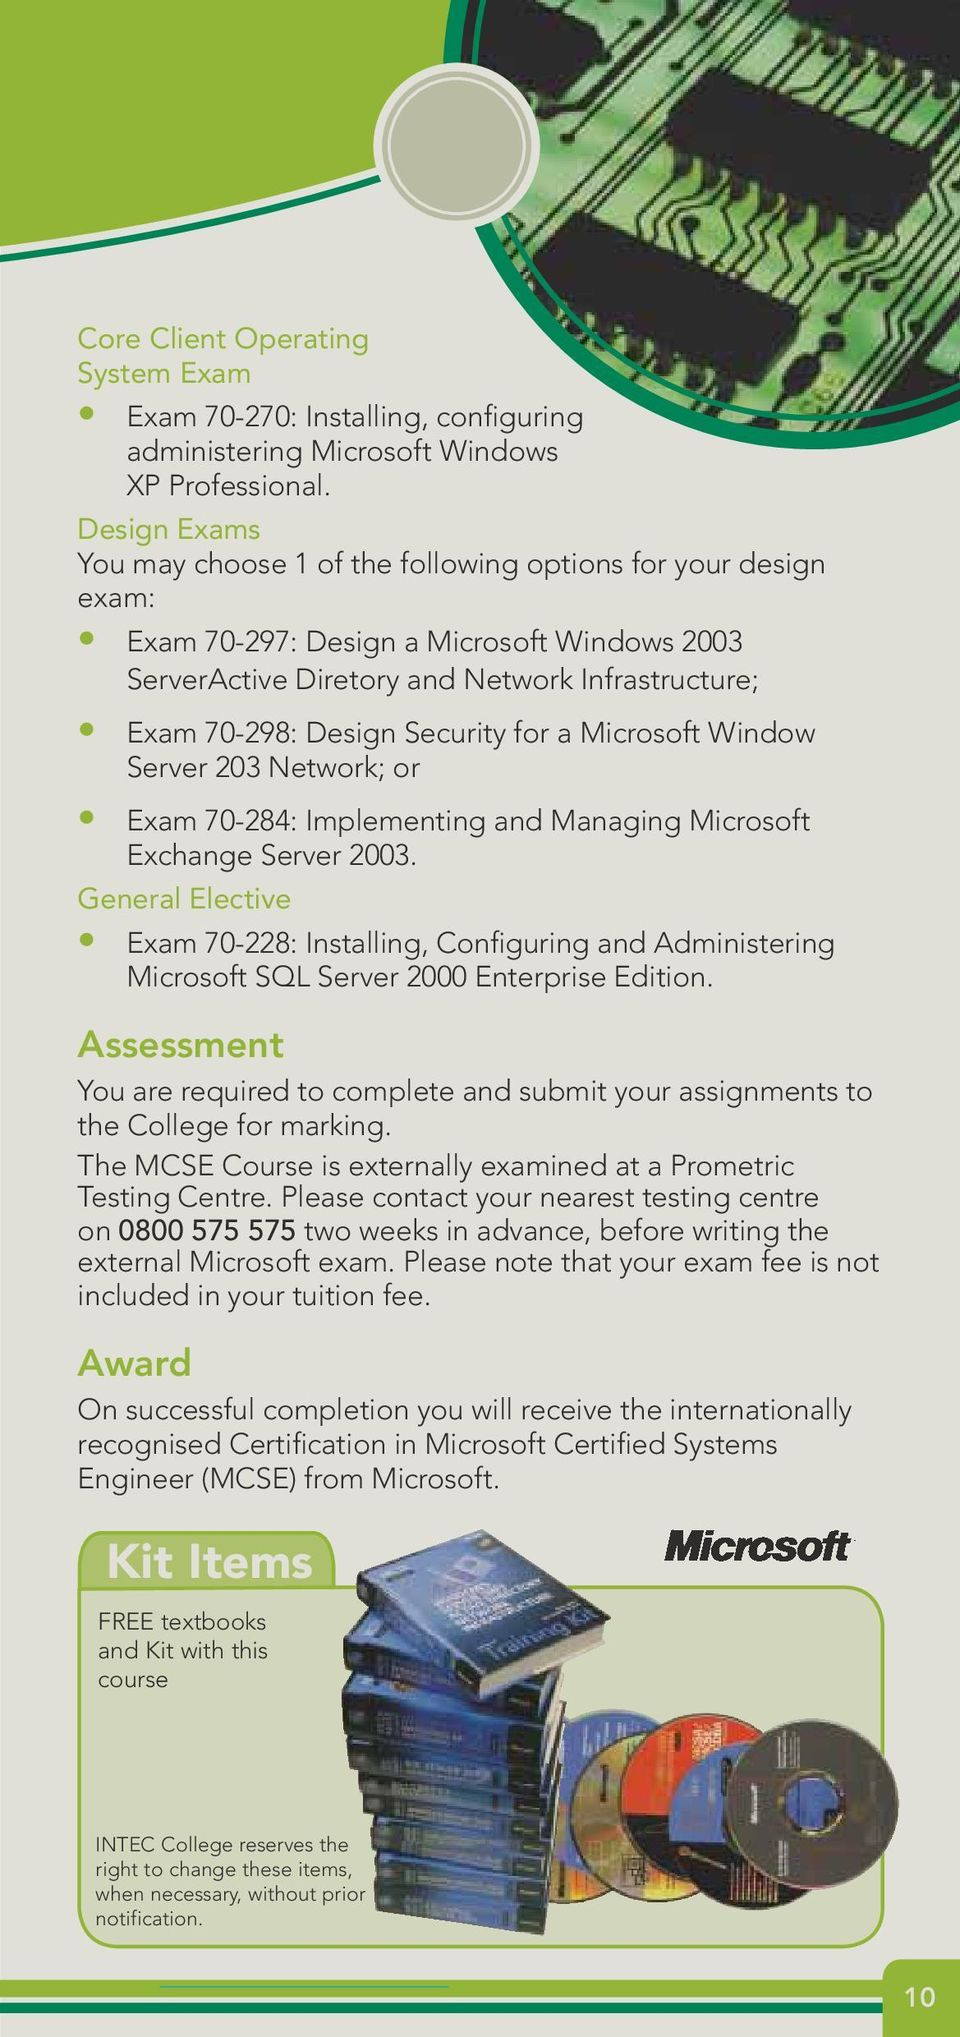 Security for a Microsoft Window Server 203 Network; or Exam 70-284: Implementing and Managing Microsoft Exchange Server 2003.